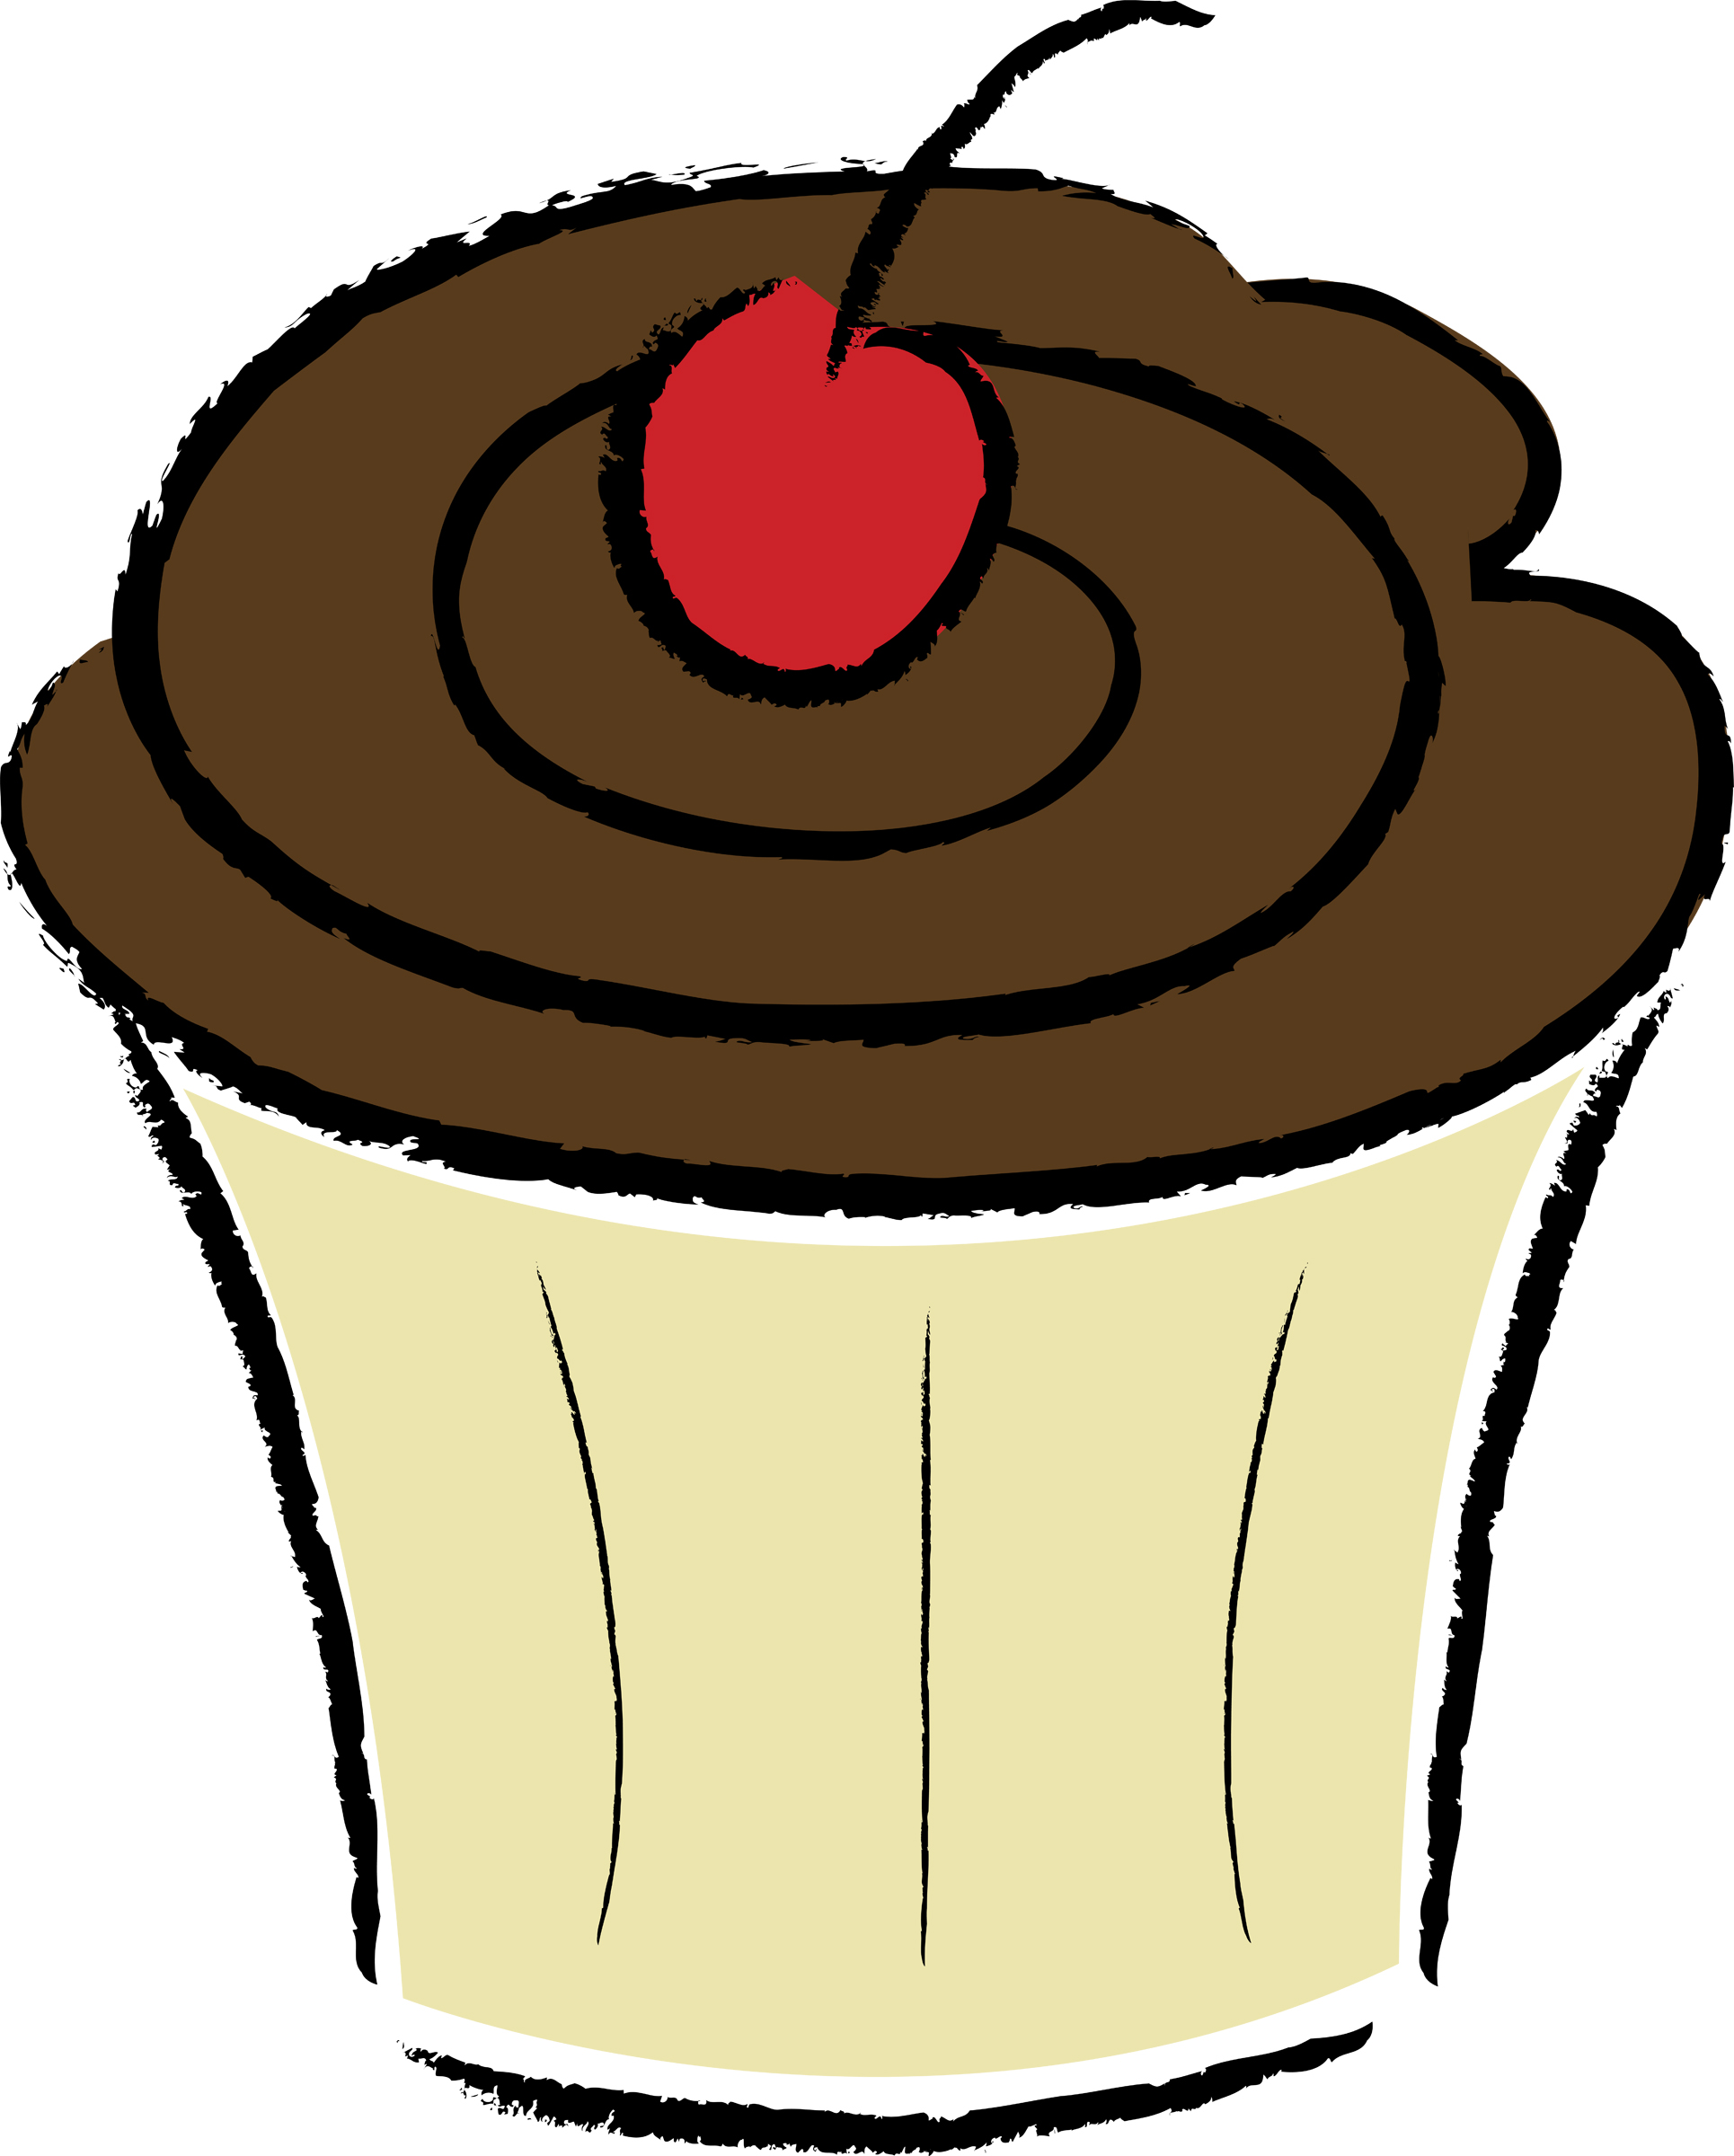 Cupcake Silhouette Clipart   Free download on ClipArtMag (1930 x 2400 Pixel)